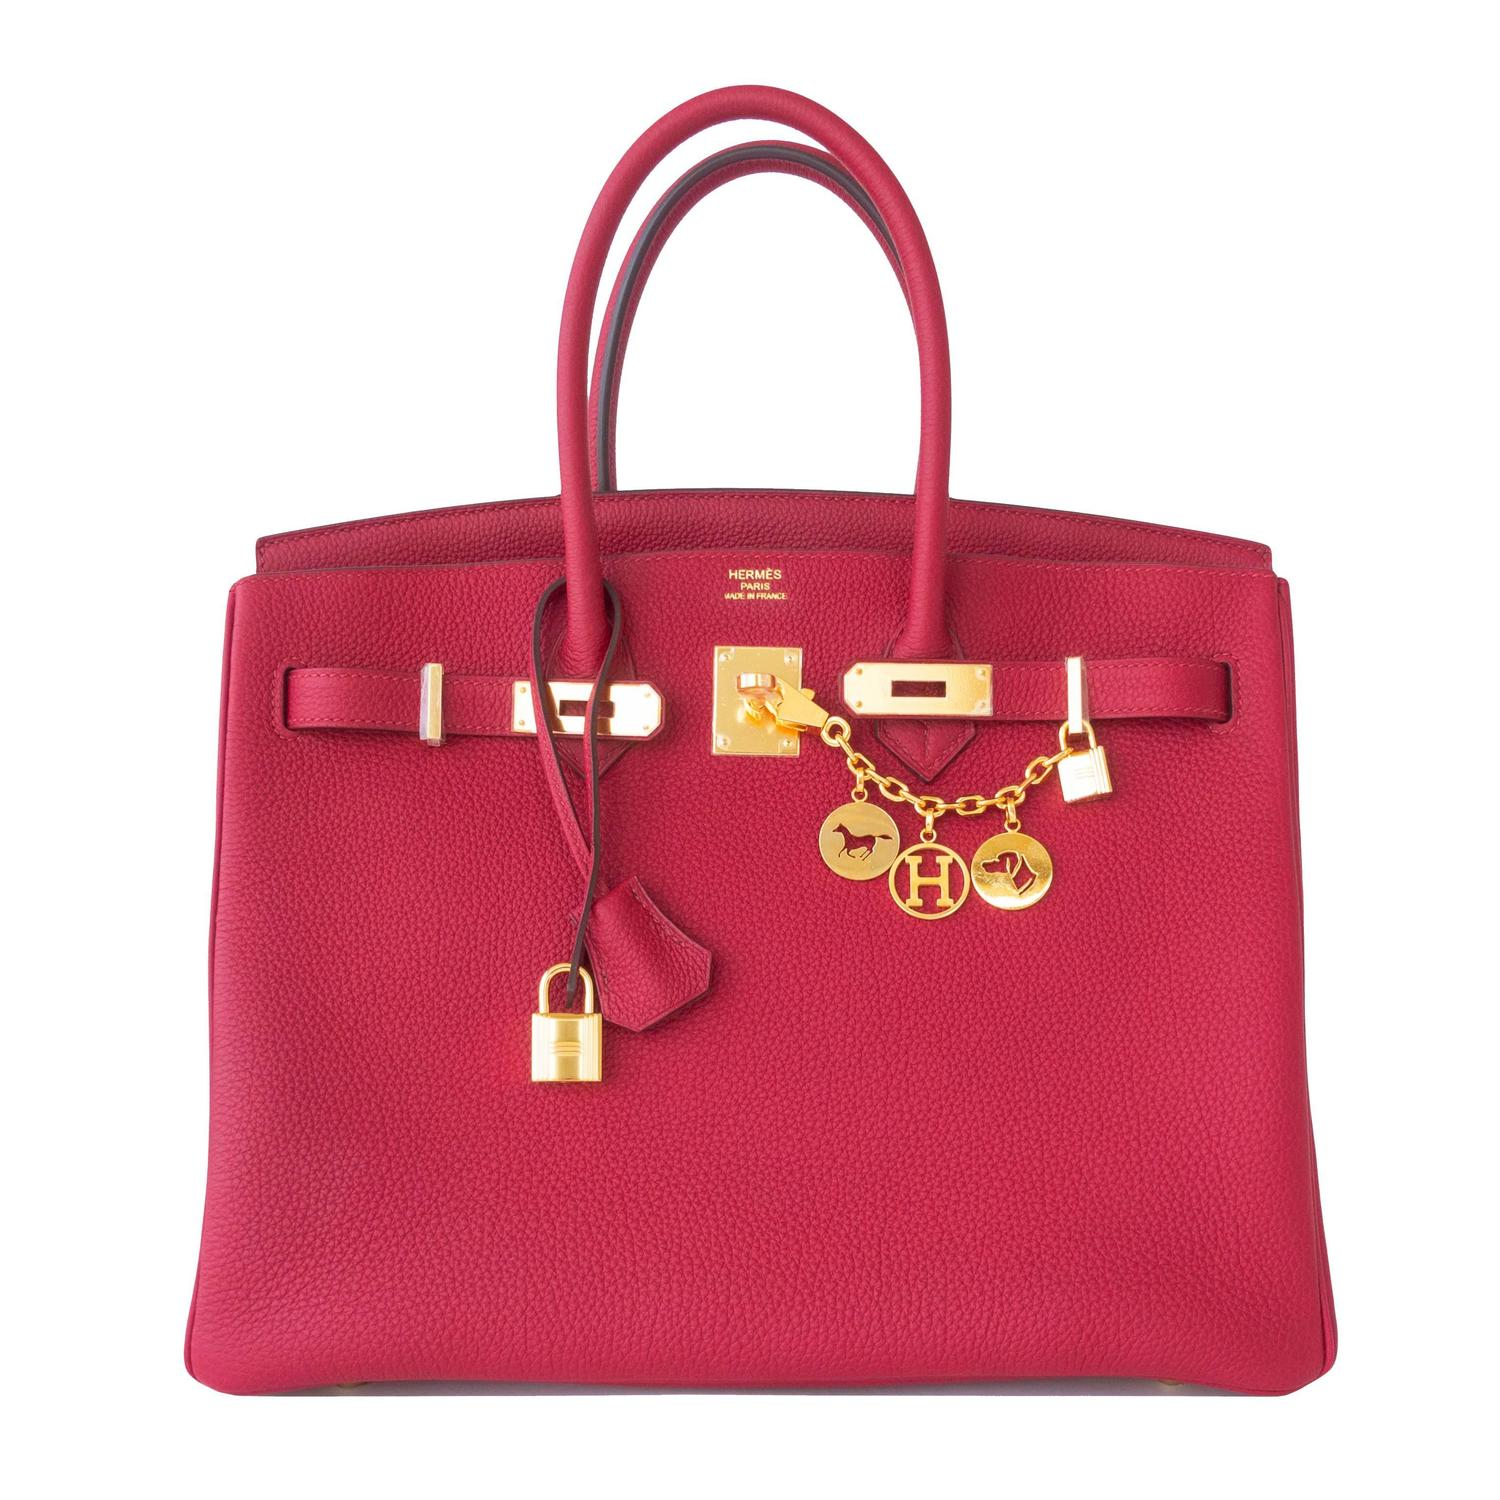 birkin bag look for less - Hermes Rouge Grenat Togo Garnet Red 35cm Birkin Bag Gold Hardware ...